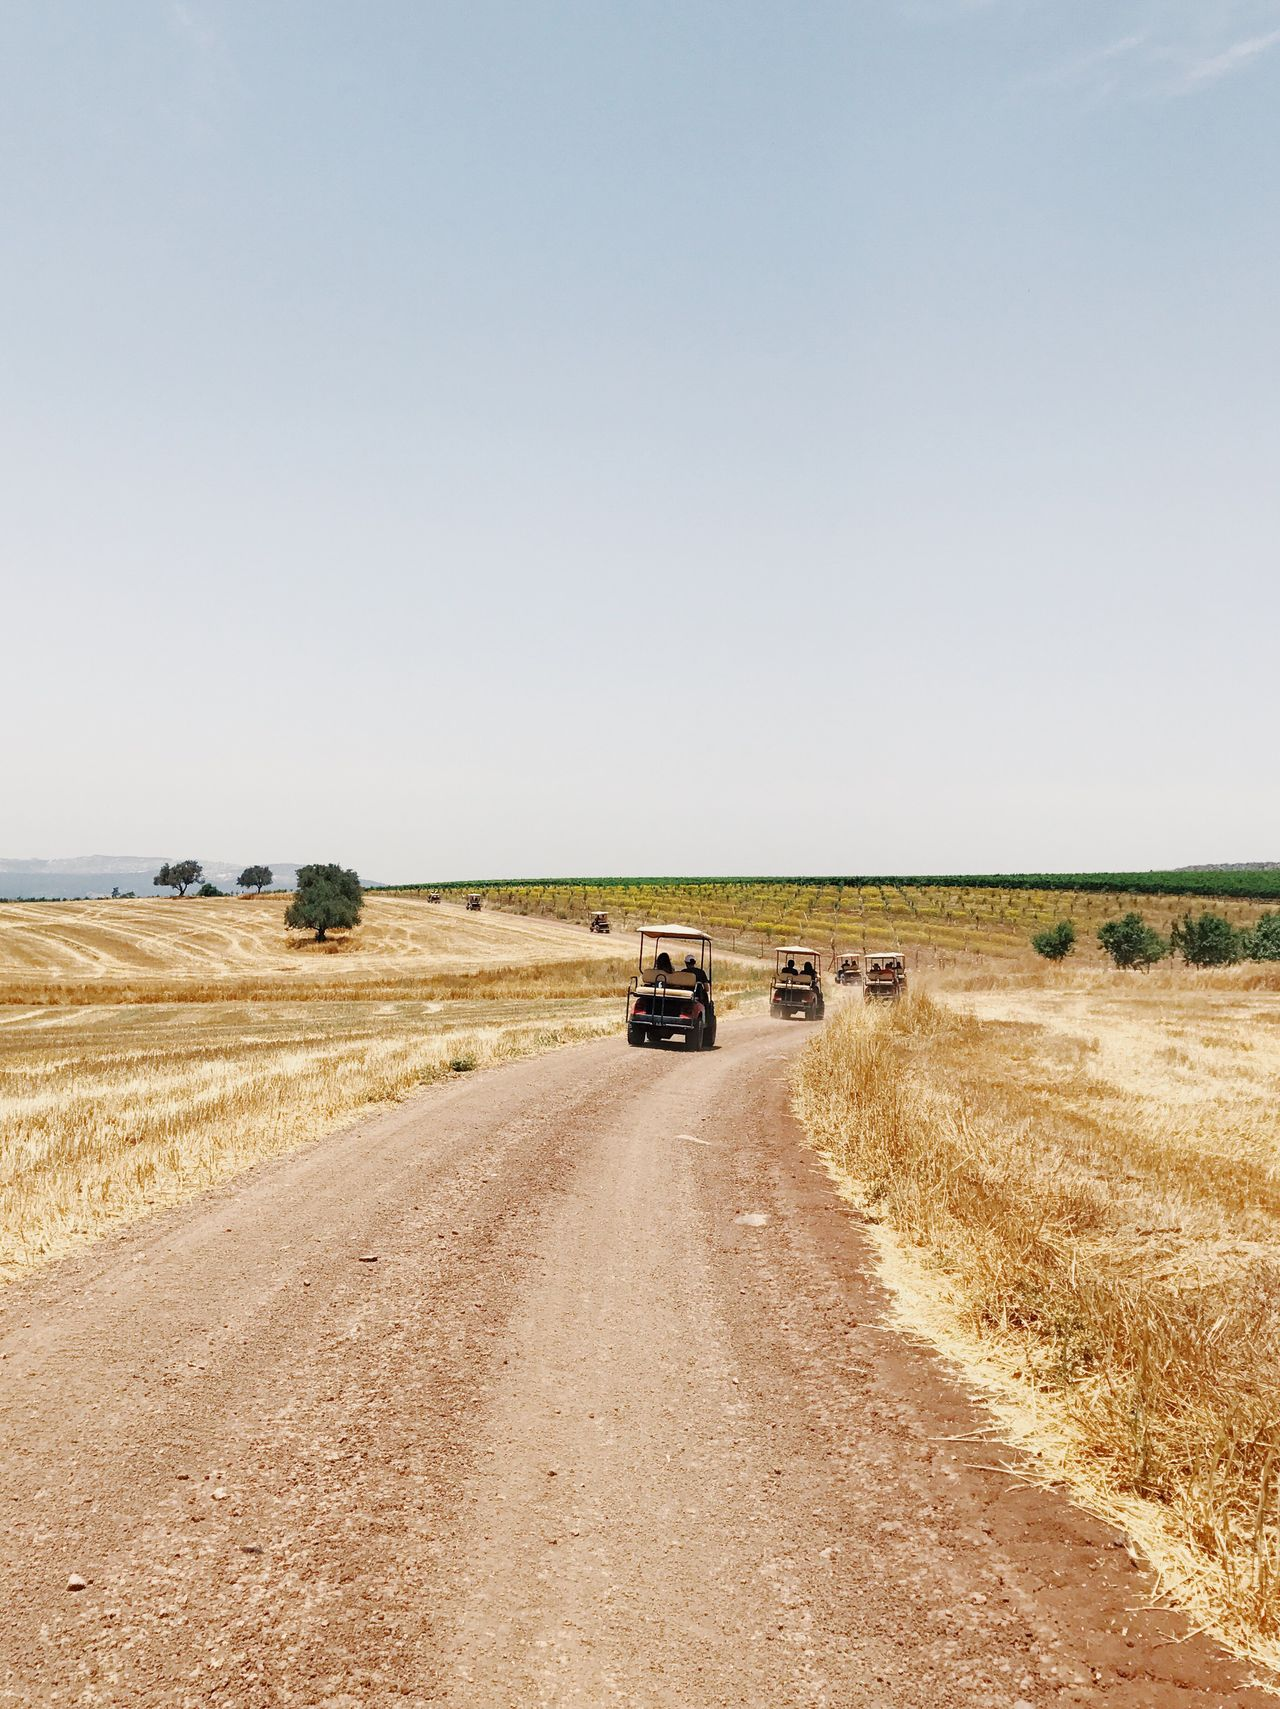 The Great Outdoors - 2017 EyeEm Awards Field Landscape Transportation Copy Space Day Rural Scene Car Road Clear Sky Nature Scenics 4x4 No People Outdoors Off-road Vehicle Sky Beauty In Nature IPhone7Plus מייאייפון7 Shotoniphone7plus מייטיולעבודה